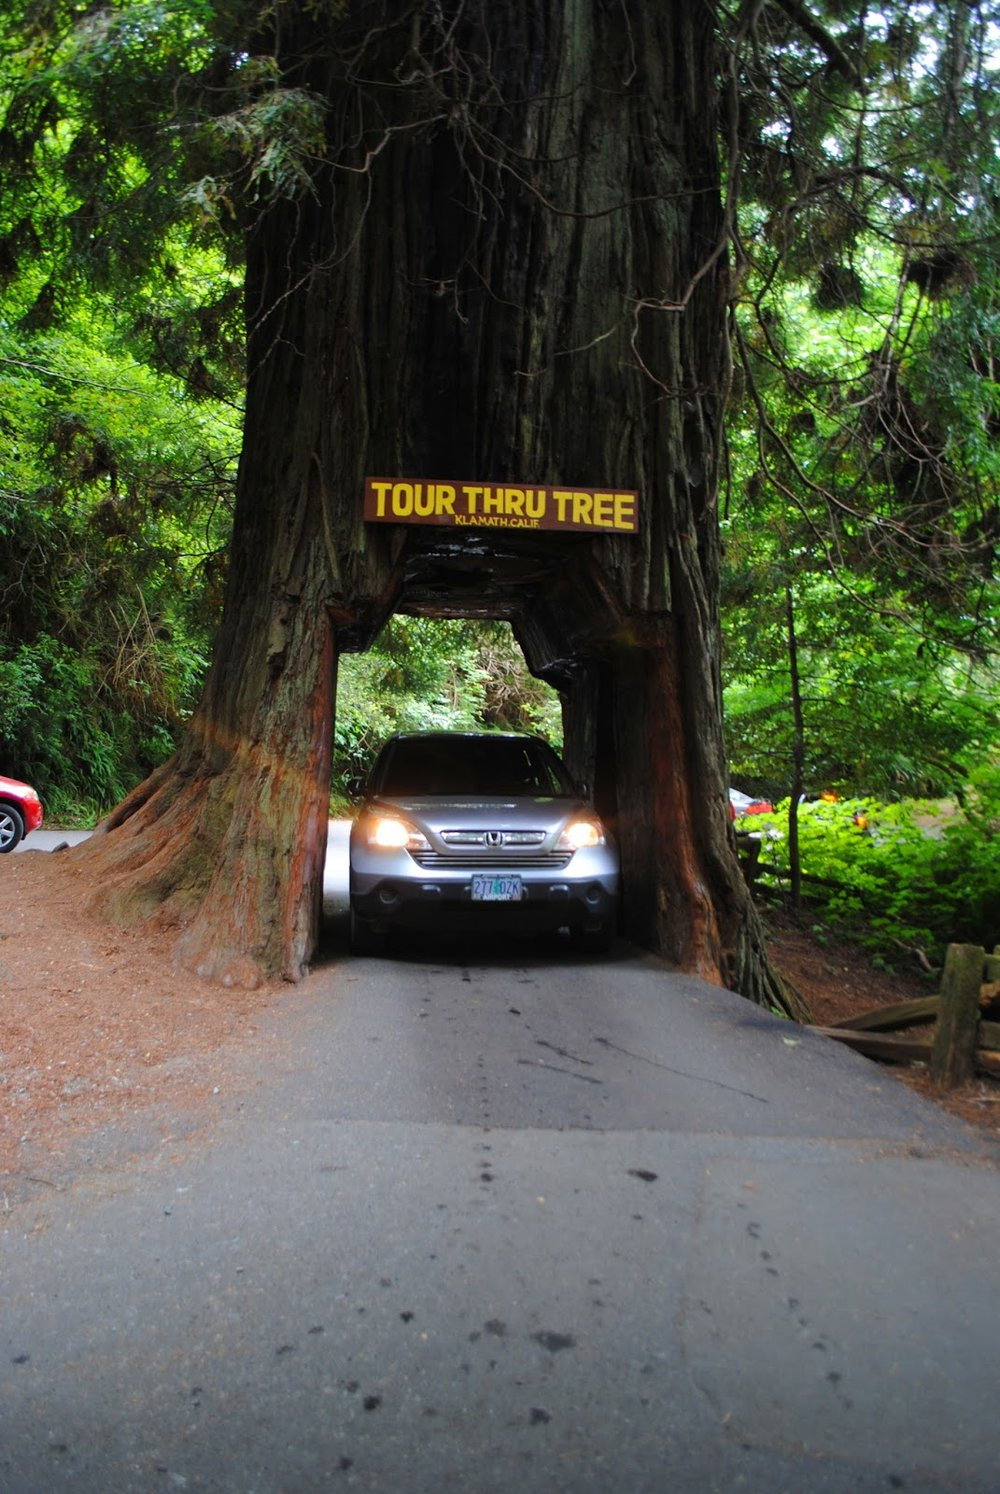 DRIVE-THRU REDWOOD TREE - Norhtern California - What to do in SOuthern ORegon - Camping - Kid-Friendly - Fun